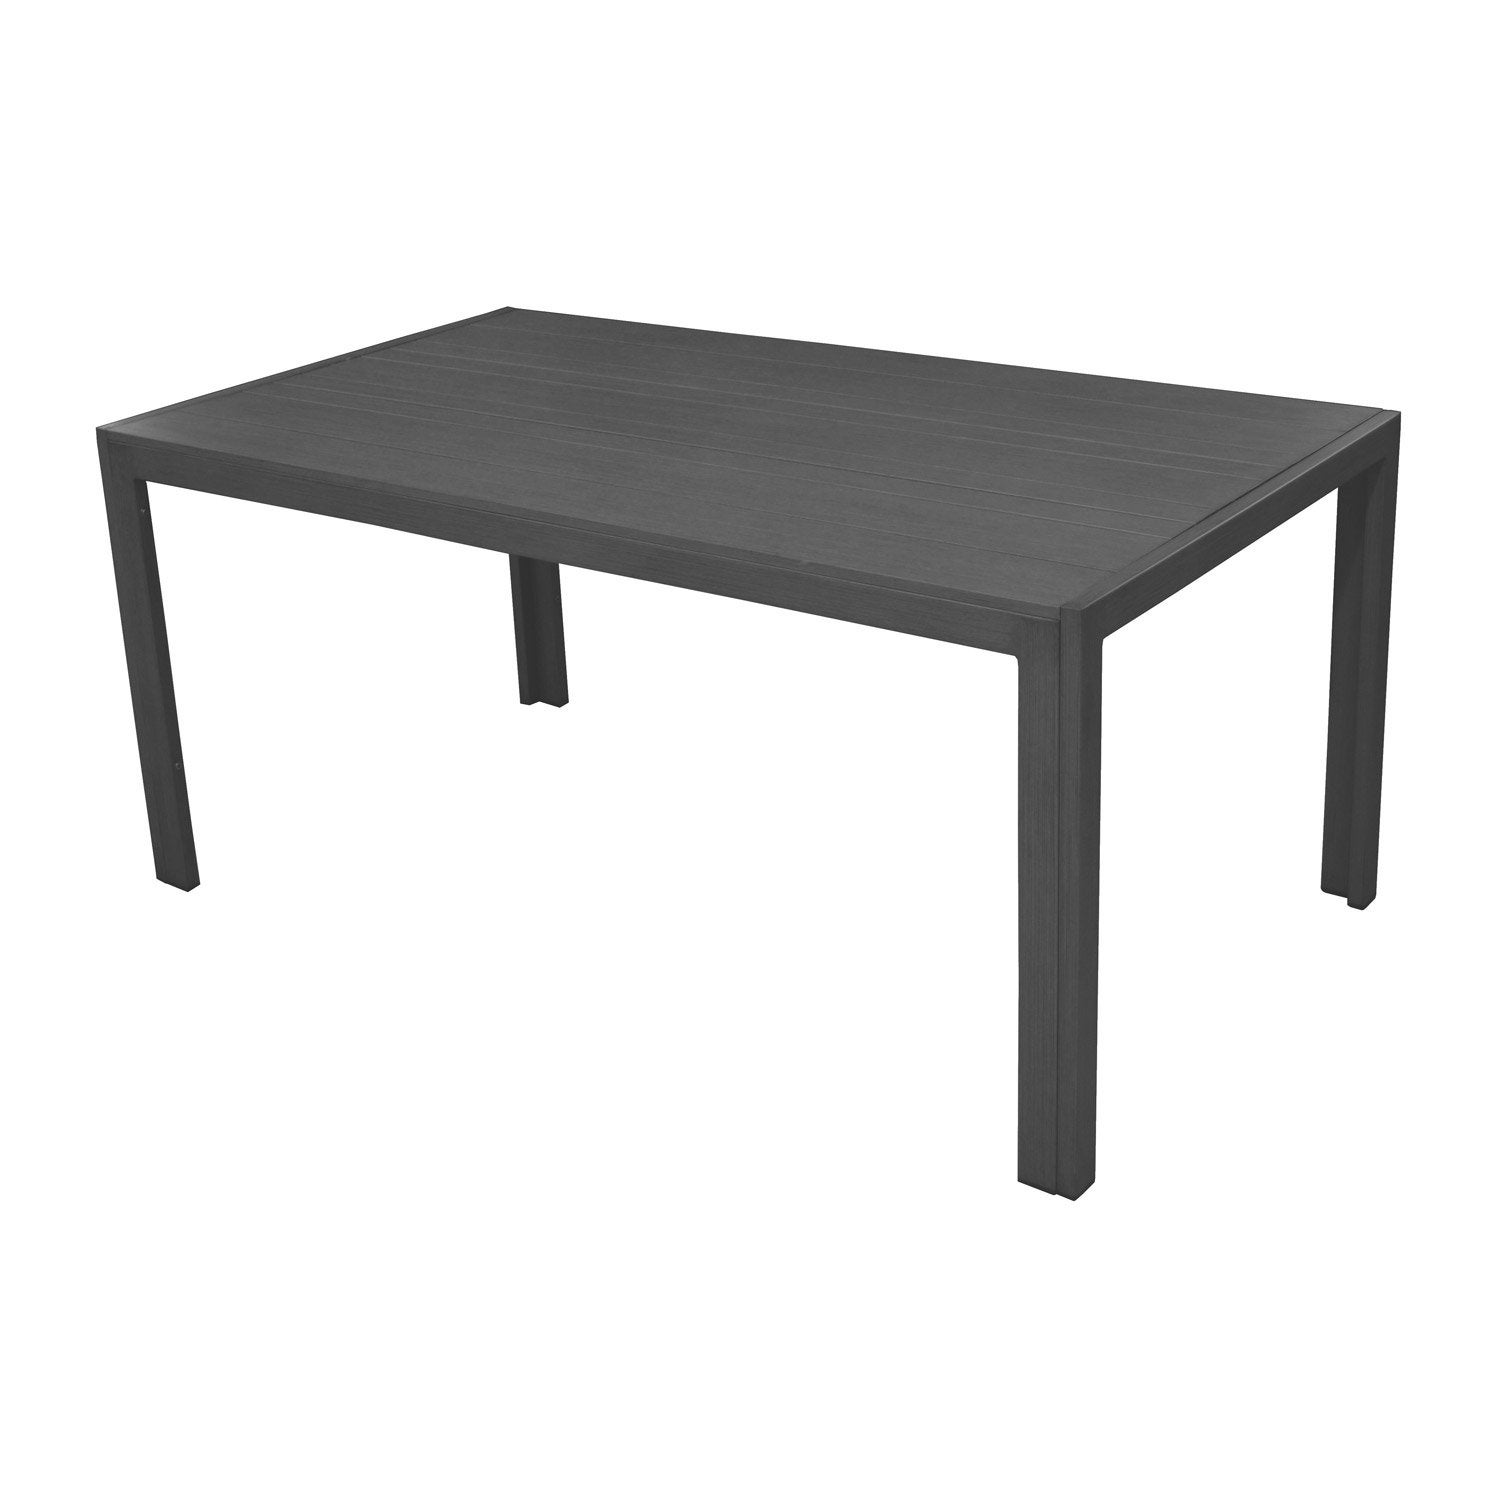 table de jardin aluminium. Black Bedroom Furniture Sets. Home Design Ideas